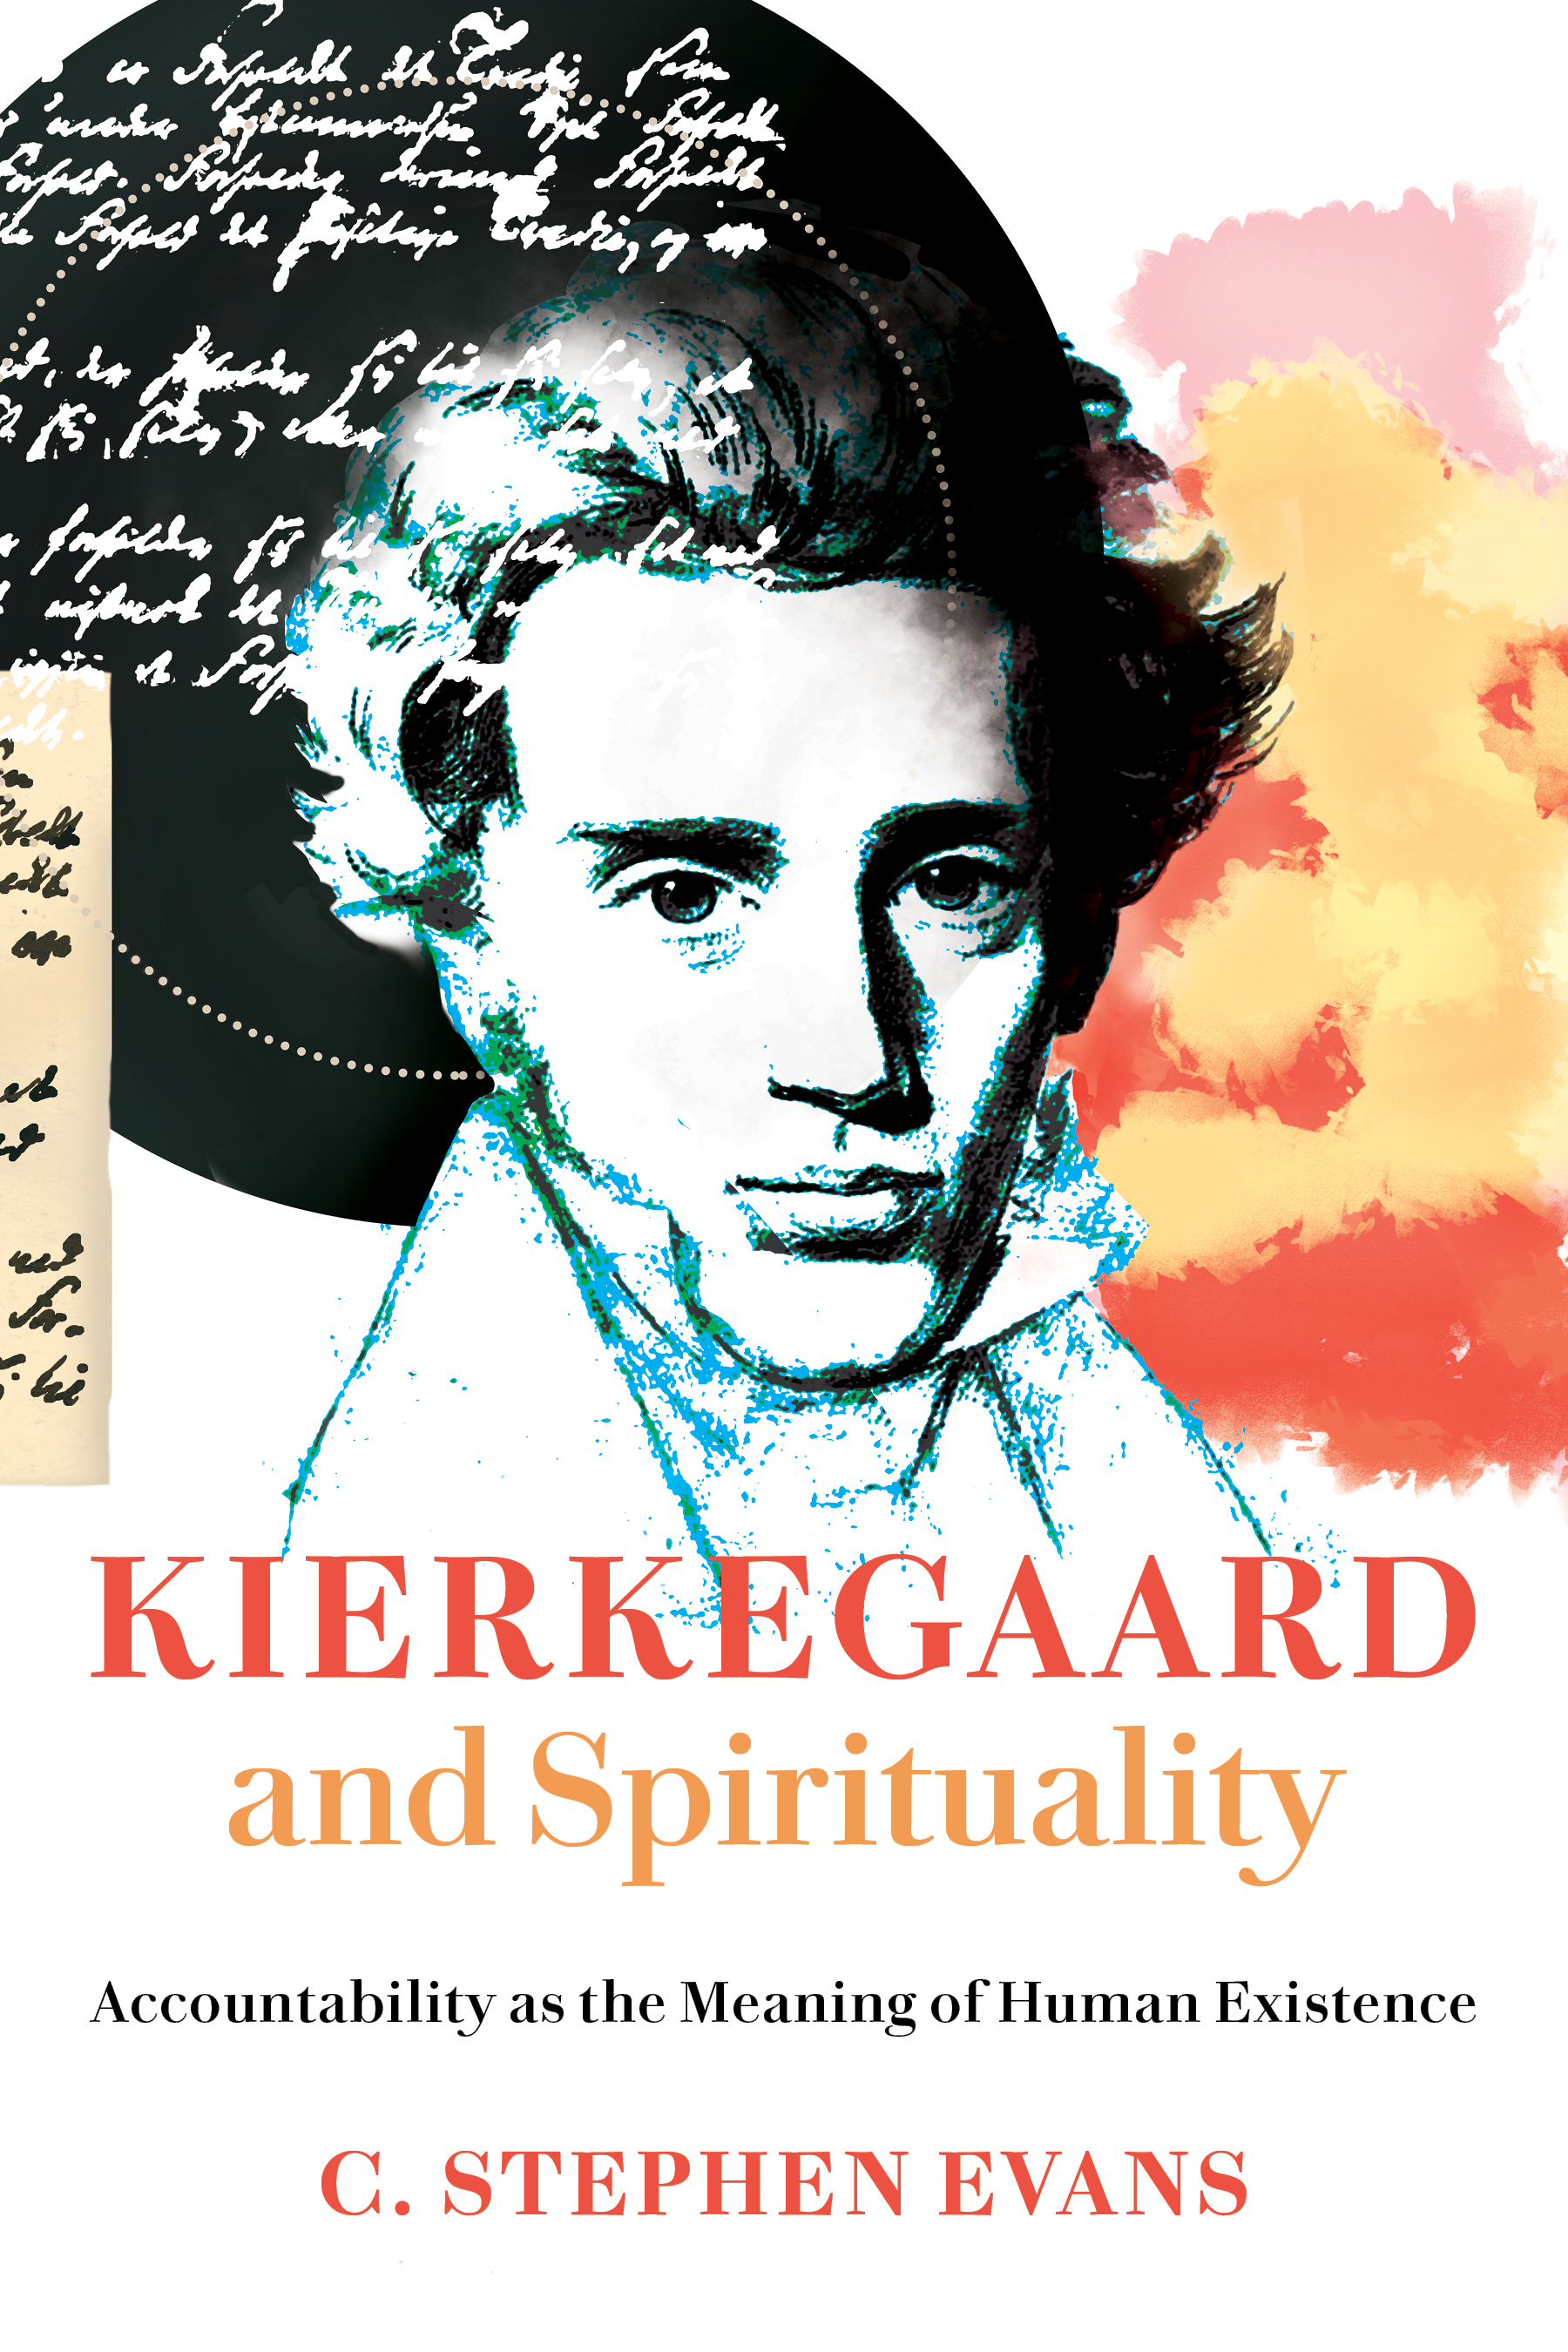 Book Cover of Kierkegaard and Spirituality